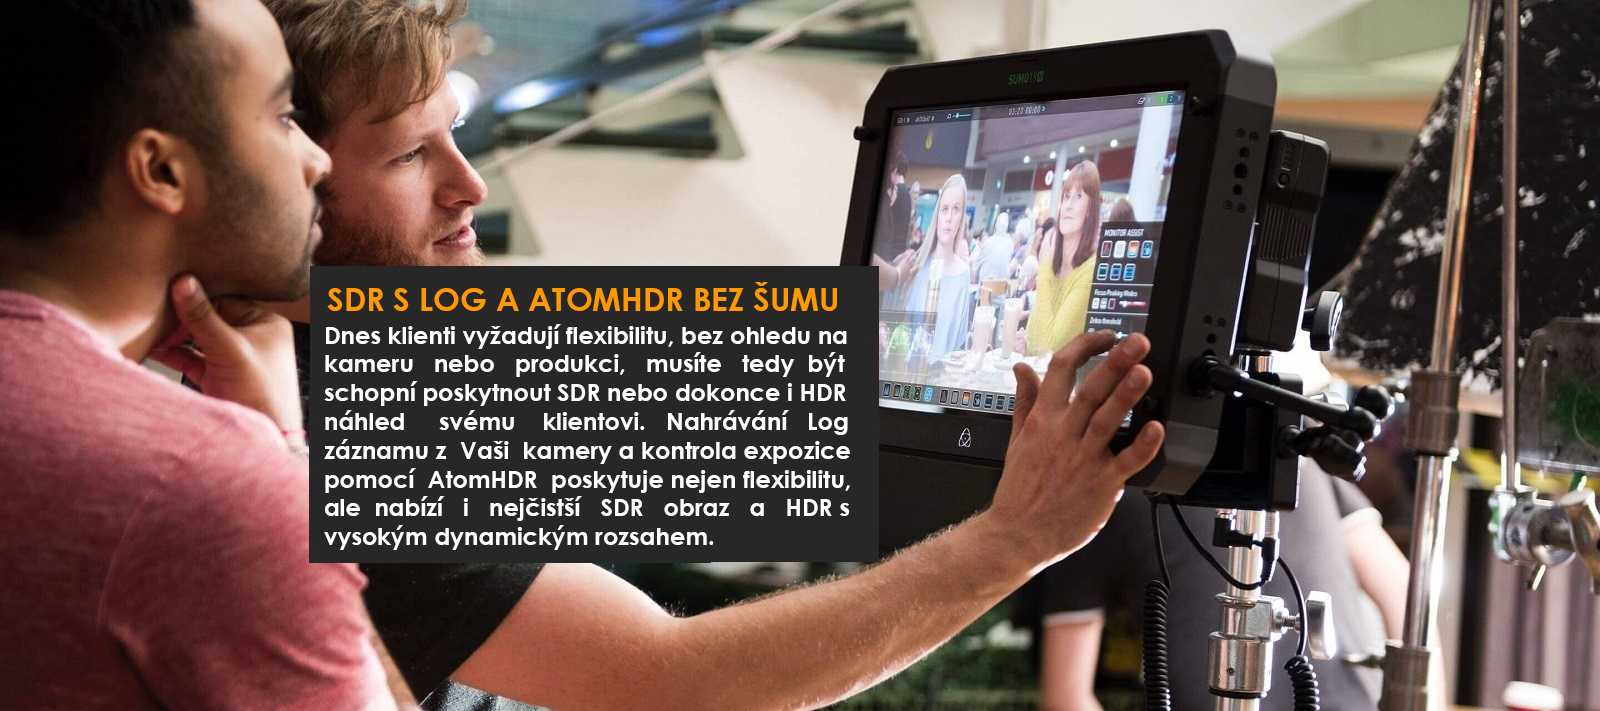 film-technika-atomos-sumo19m-09-intext